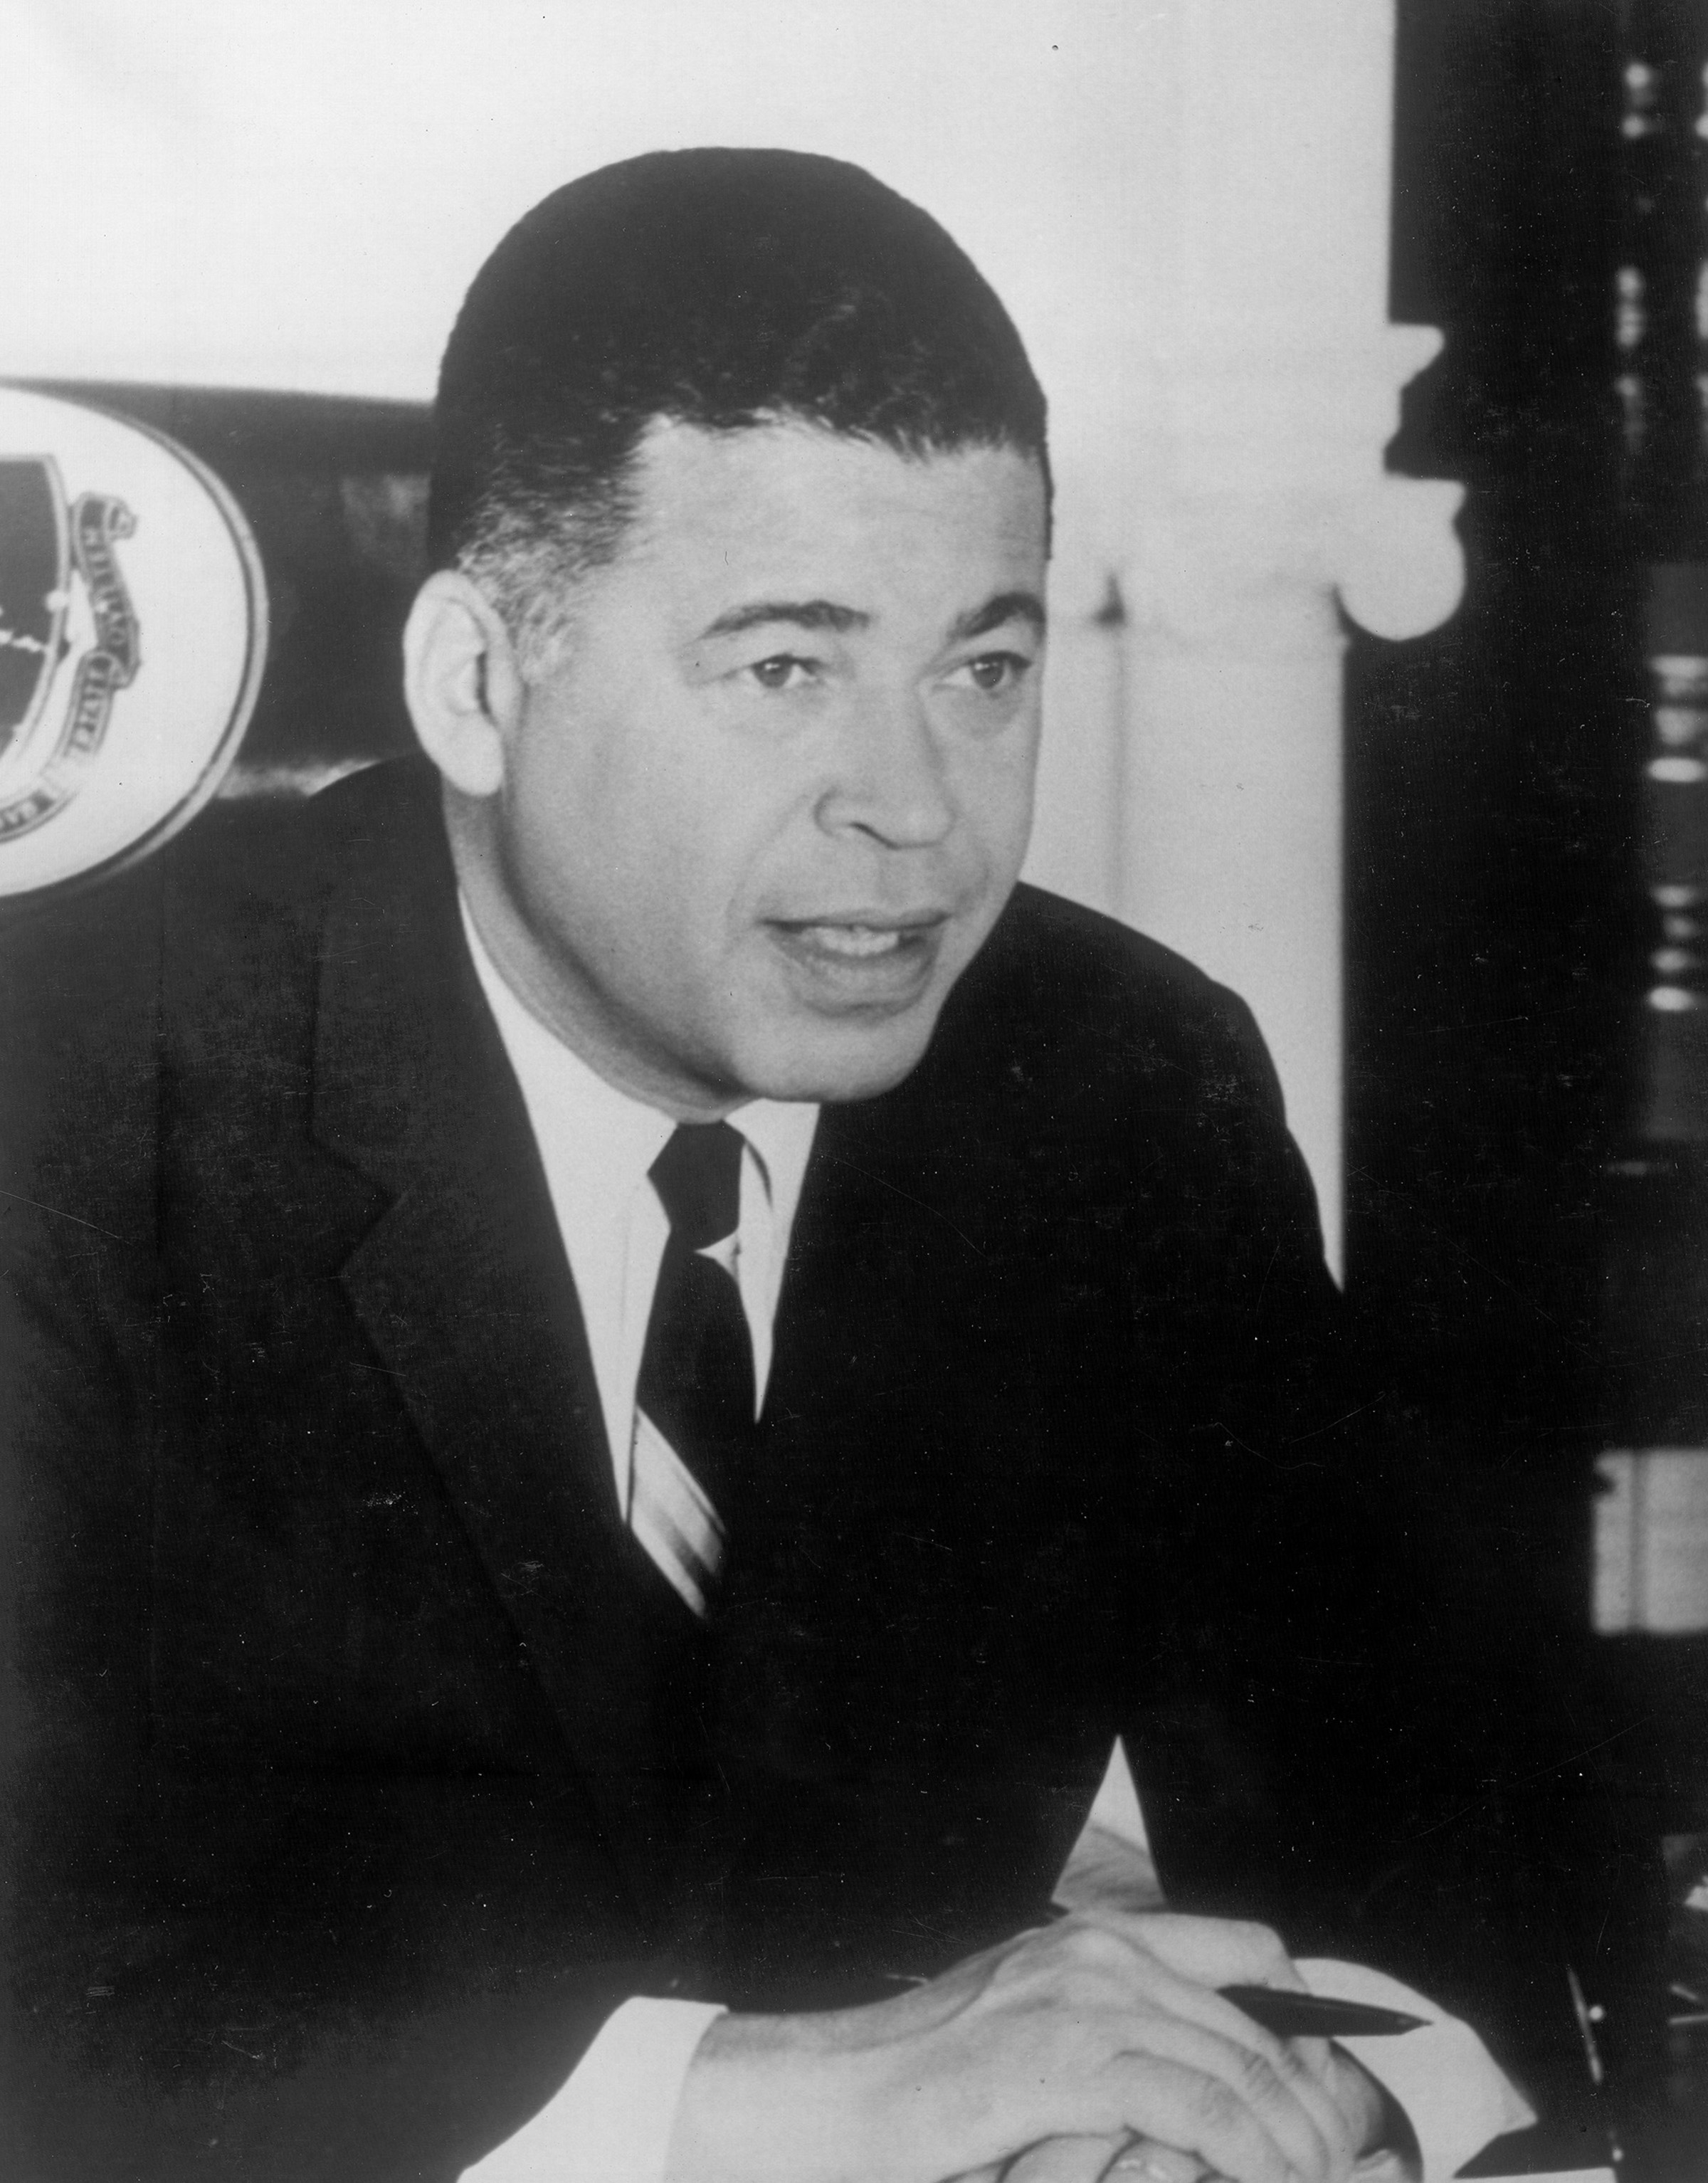 File:Edward Brooke.jpg